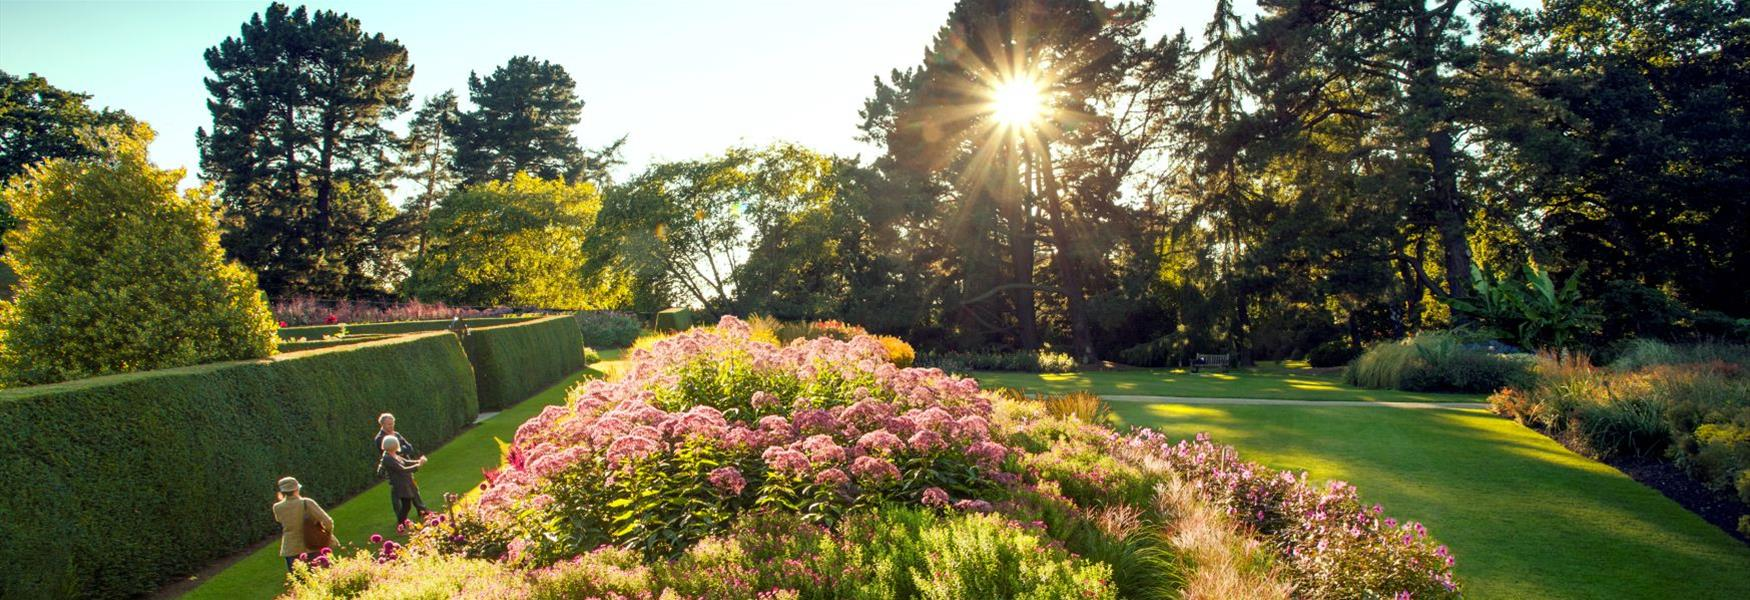 The Herbaceous Borders at The Savill Garden